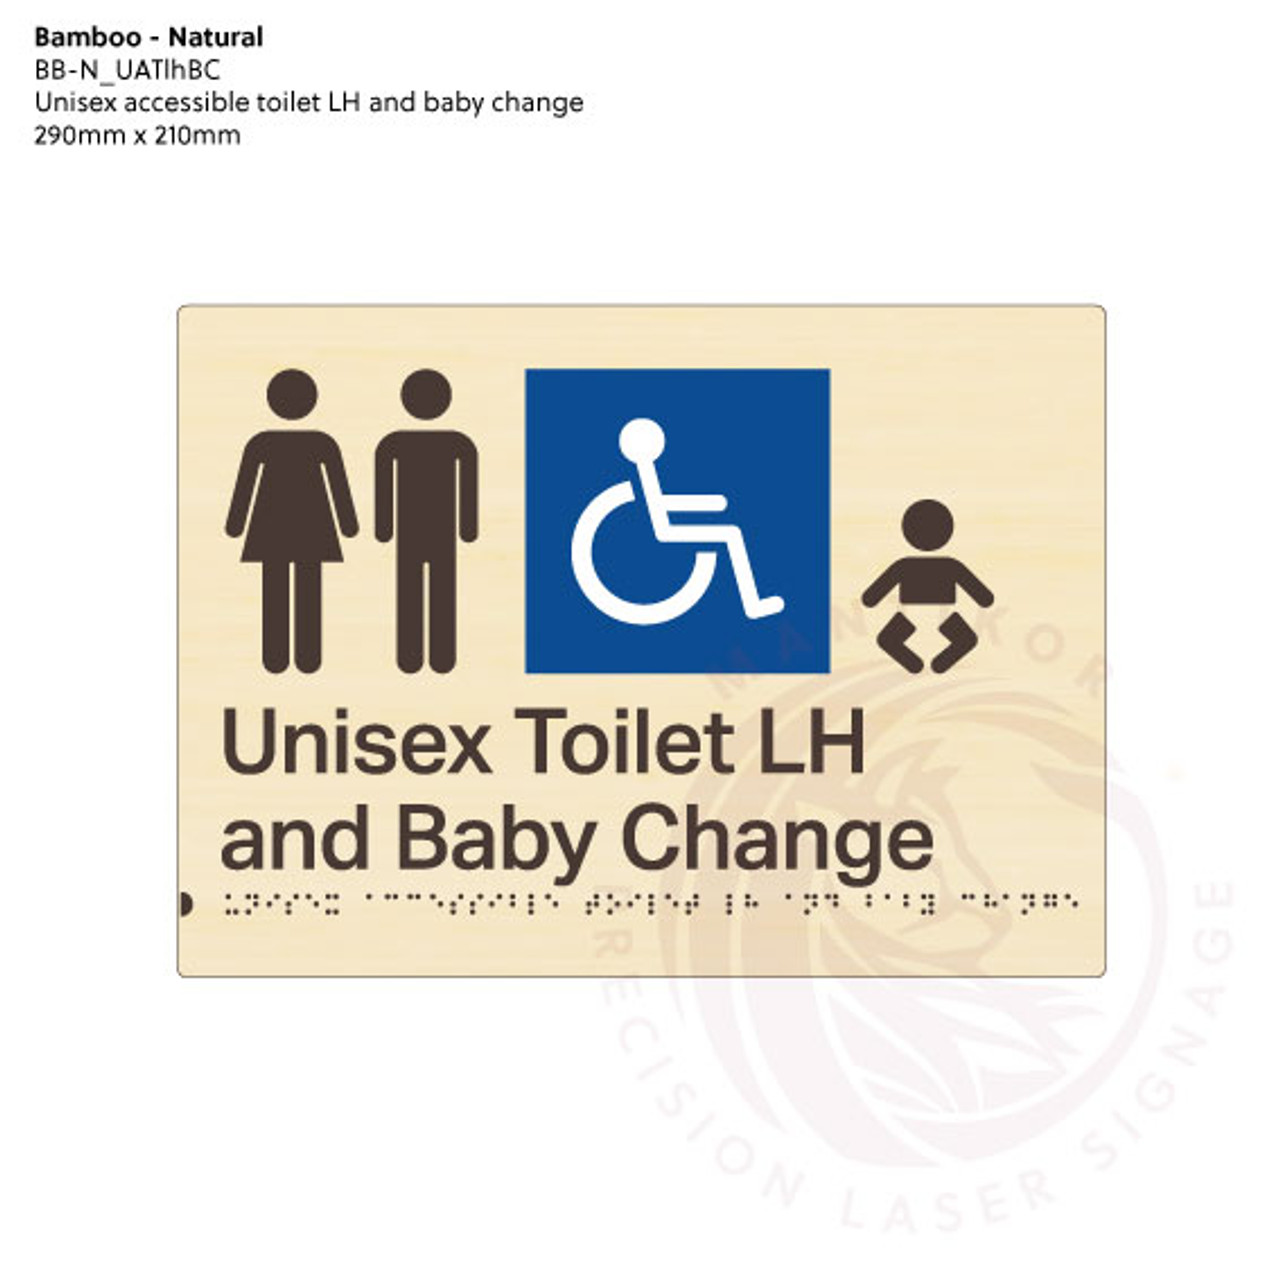 Natural Bamboo Tactile Braille Signs - Unisex Toilet LH and Baby Change